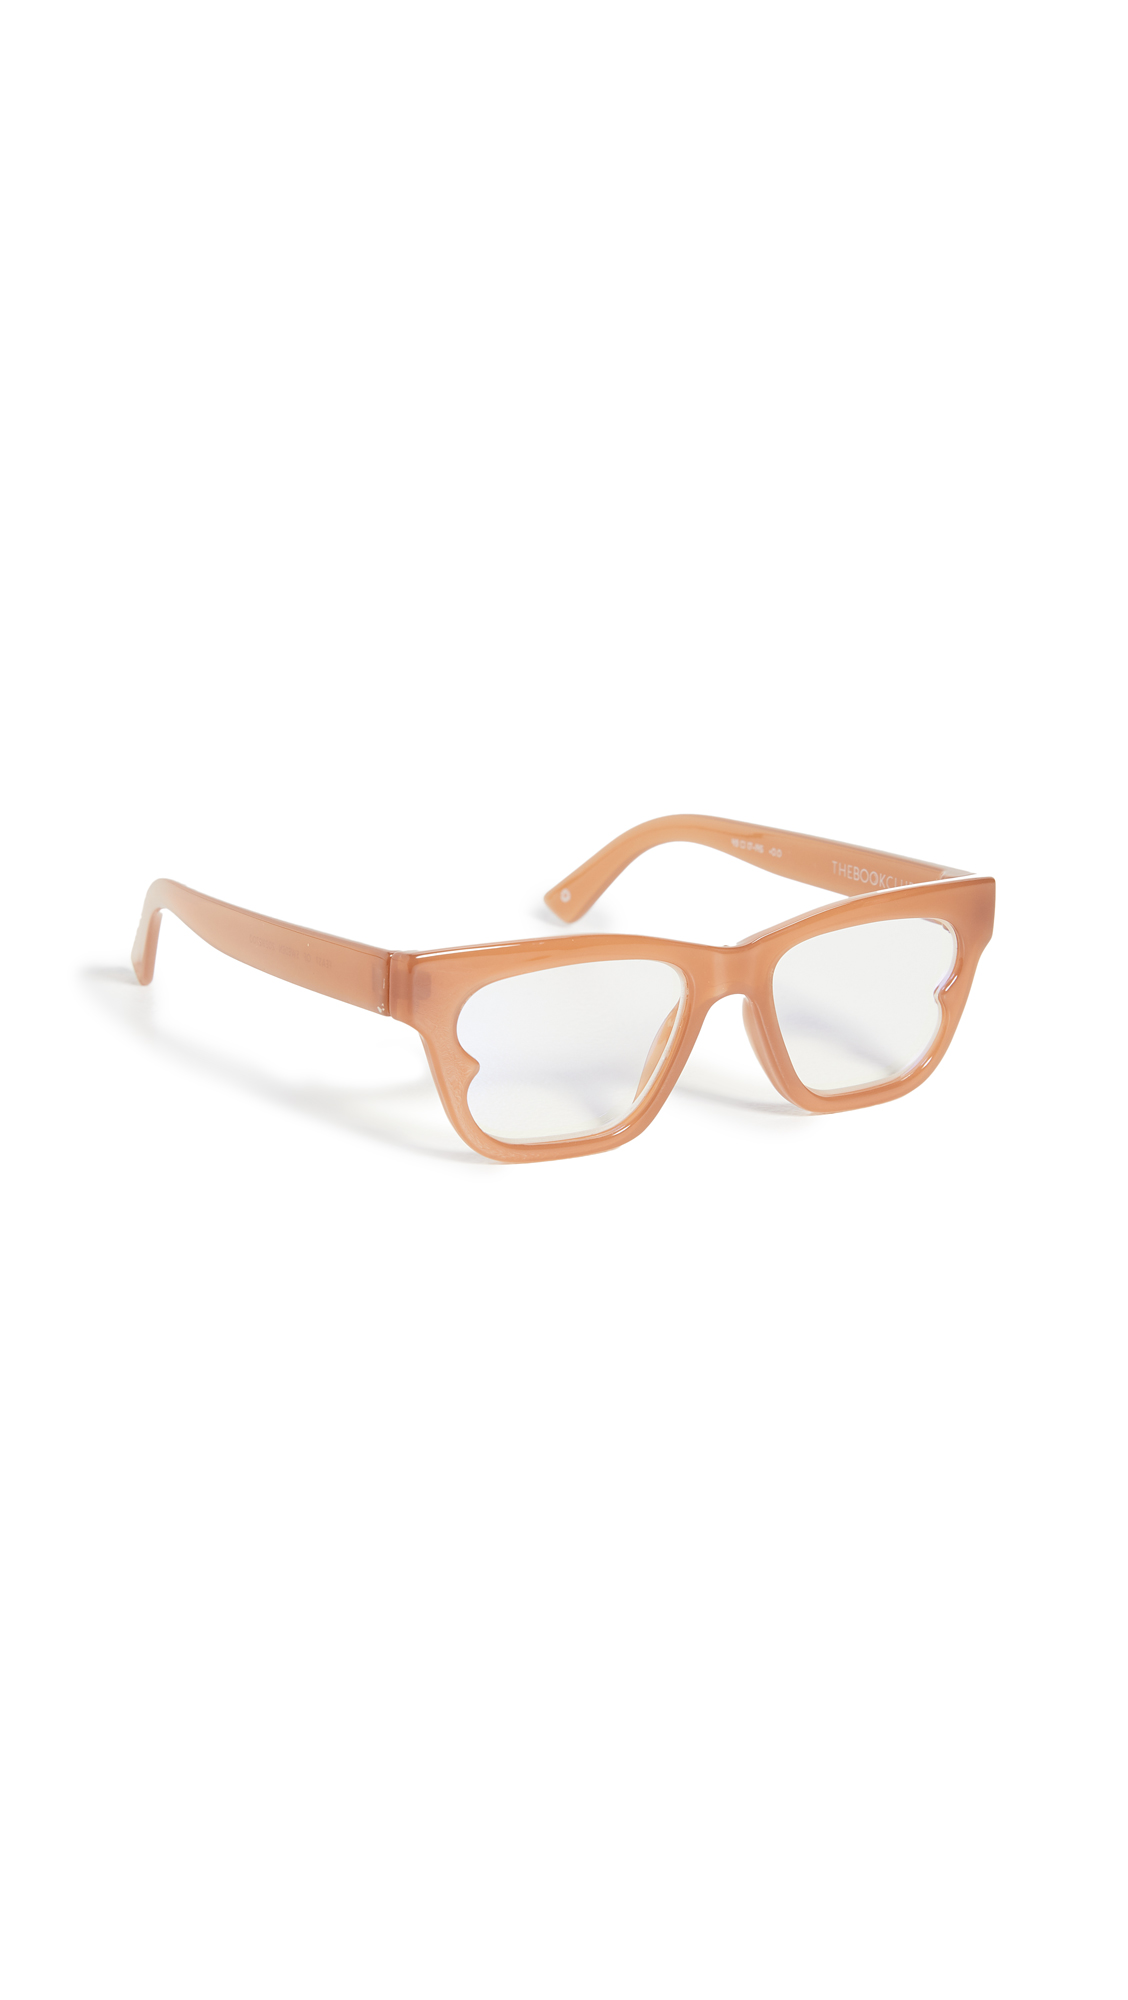 The Book Club Opticals FEAST OF SWEDEN BLUE LIGHT GLASSES